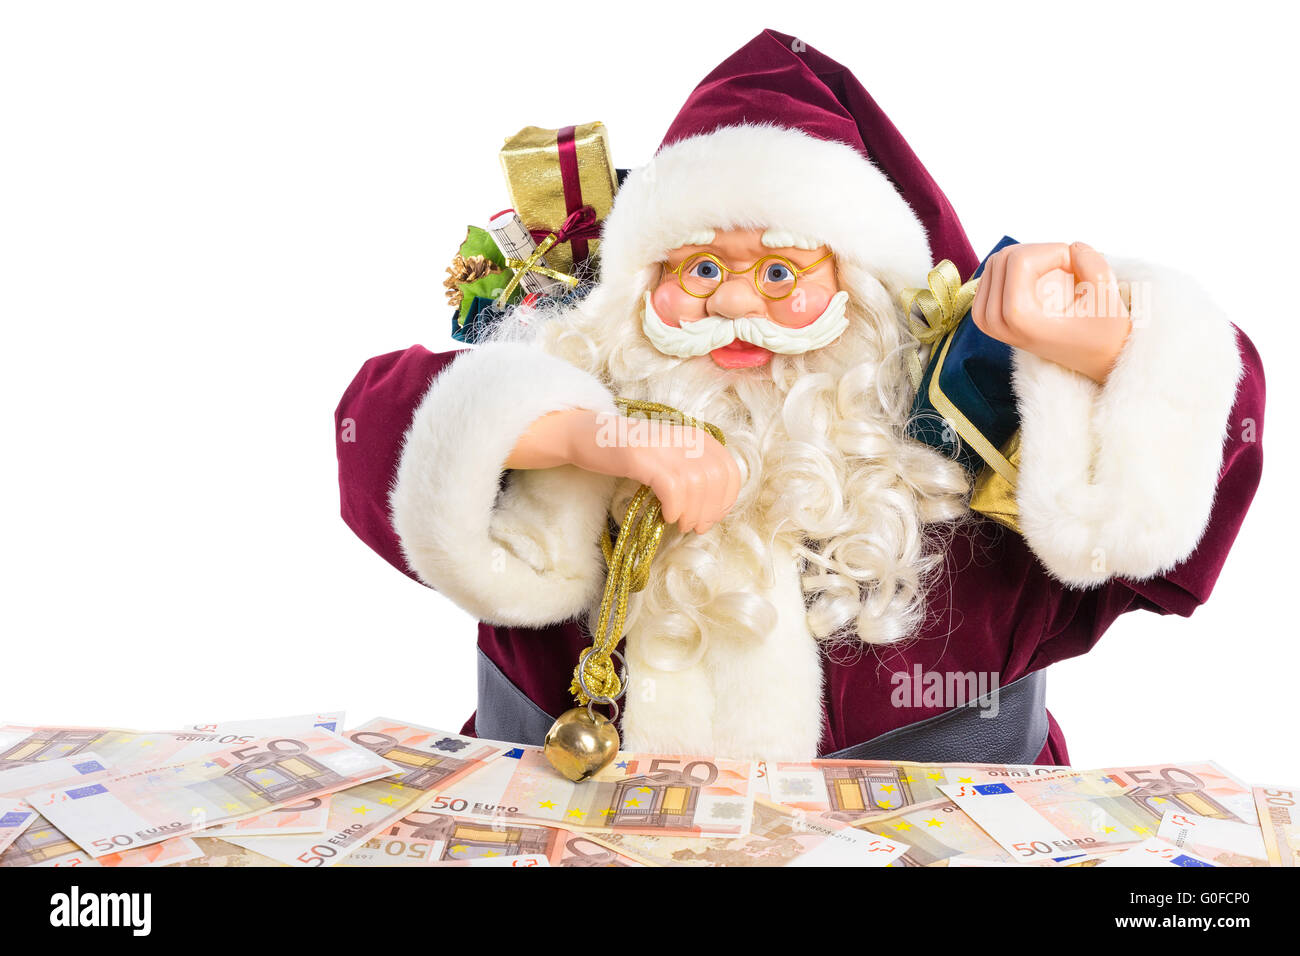 Model of Santa Claus with presents and euro money - Stock Image